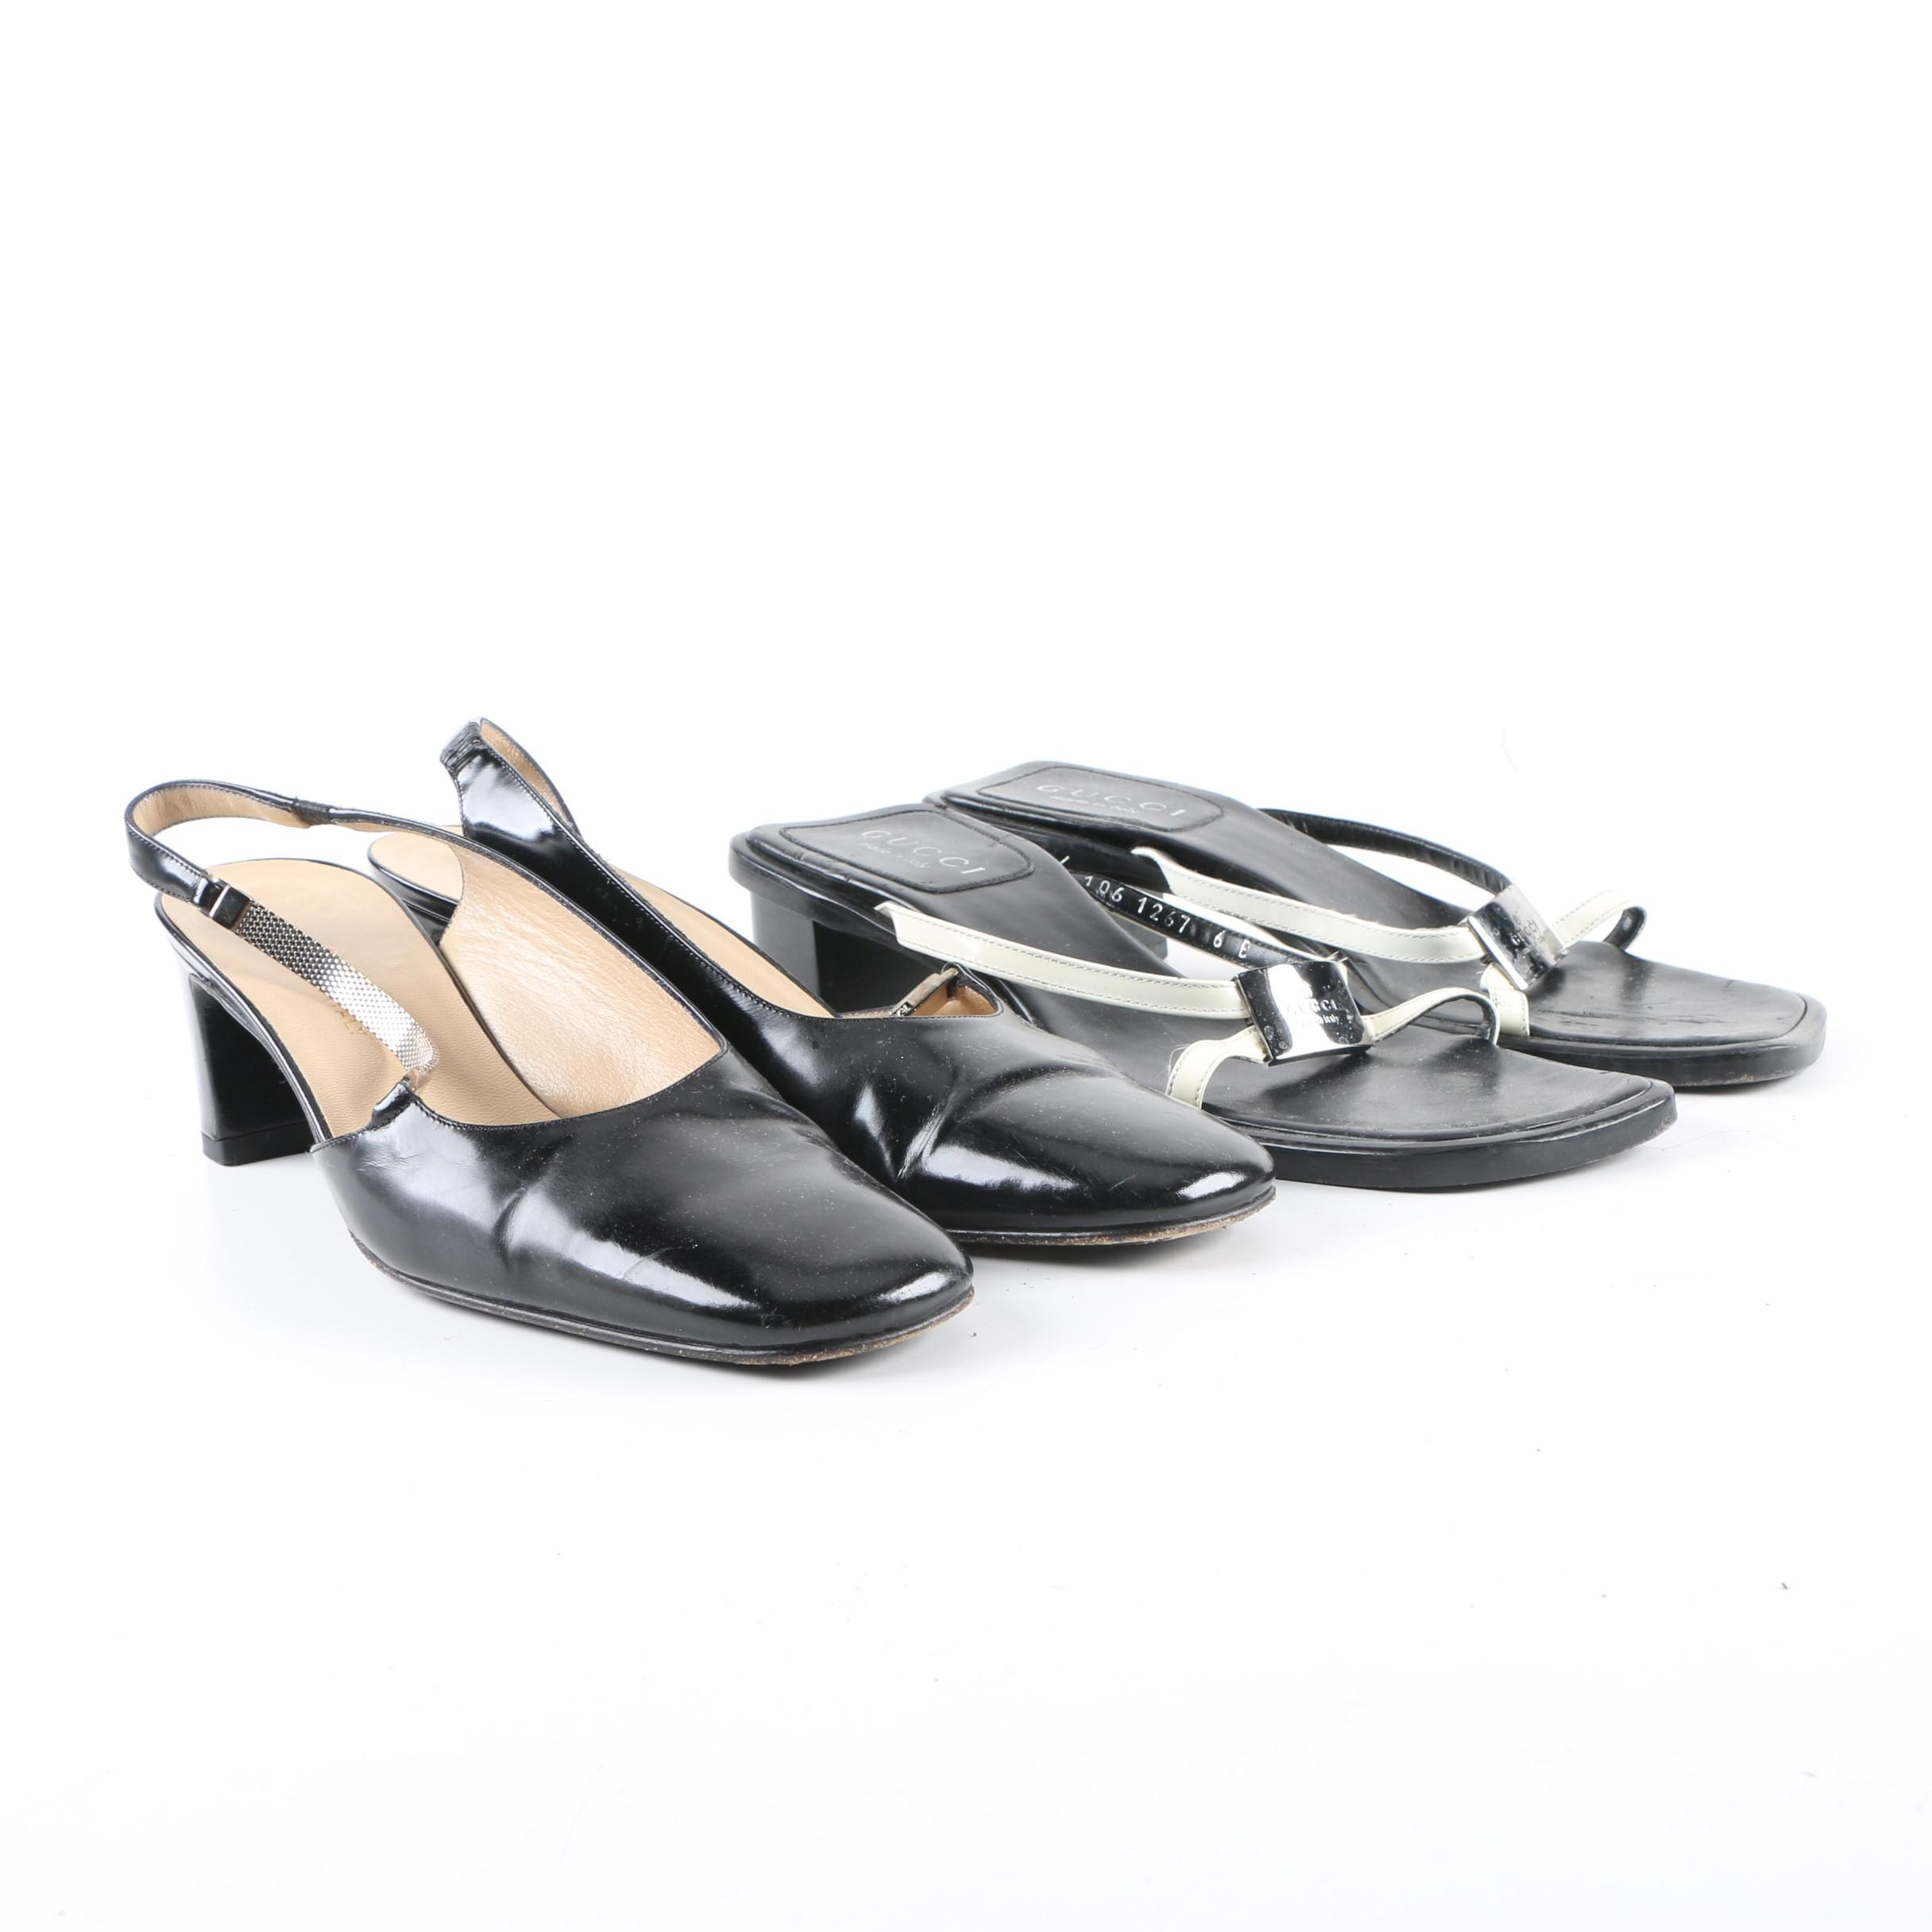 Women's Gucci Black Leather High-Heeled Slingback Mules and Sandals